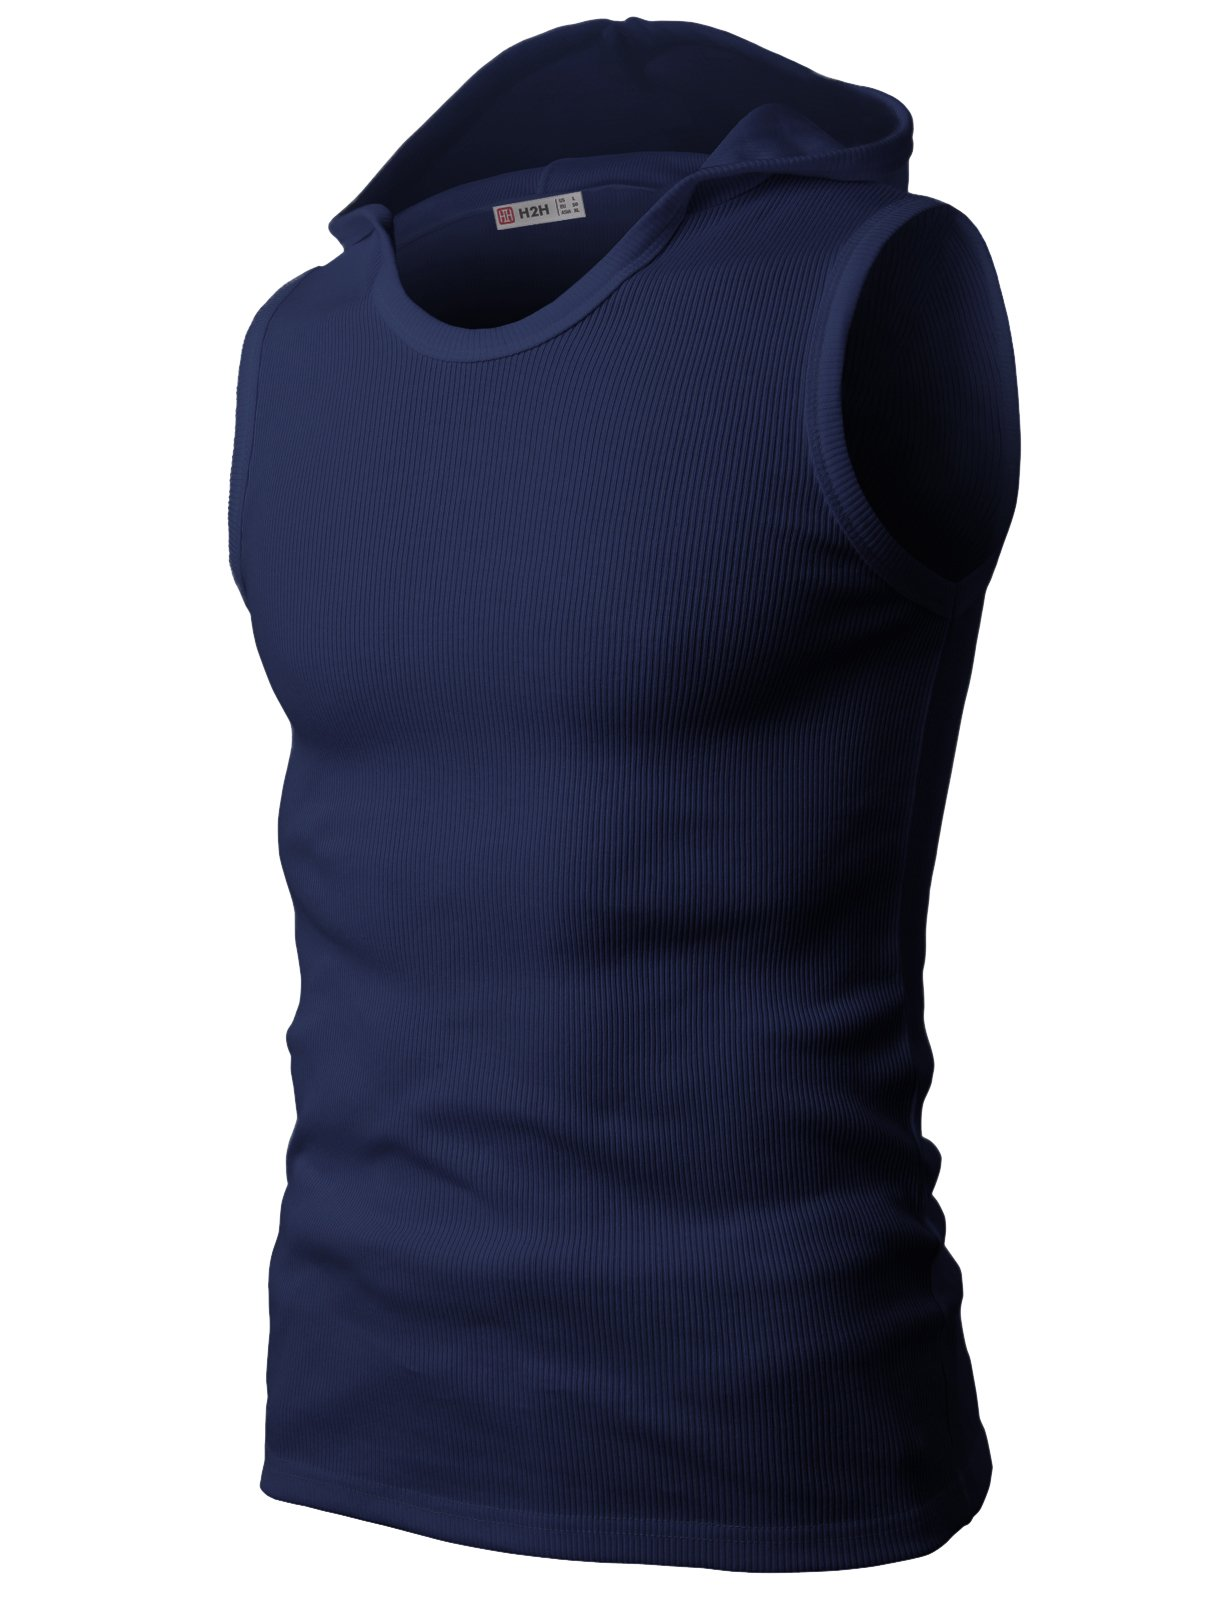 H2H Mens Easy-to-wear Active Wear Hooded Sleeveless T-Shirts Navy US S/Asia M (JPSK05)